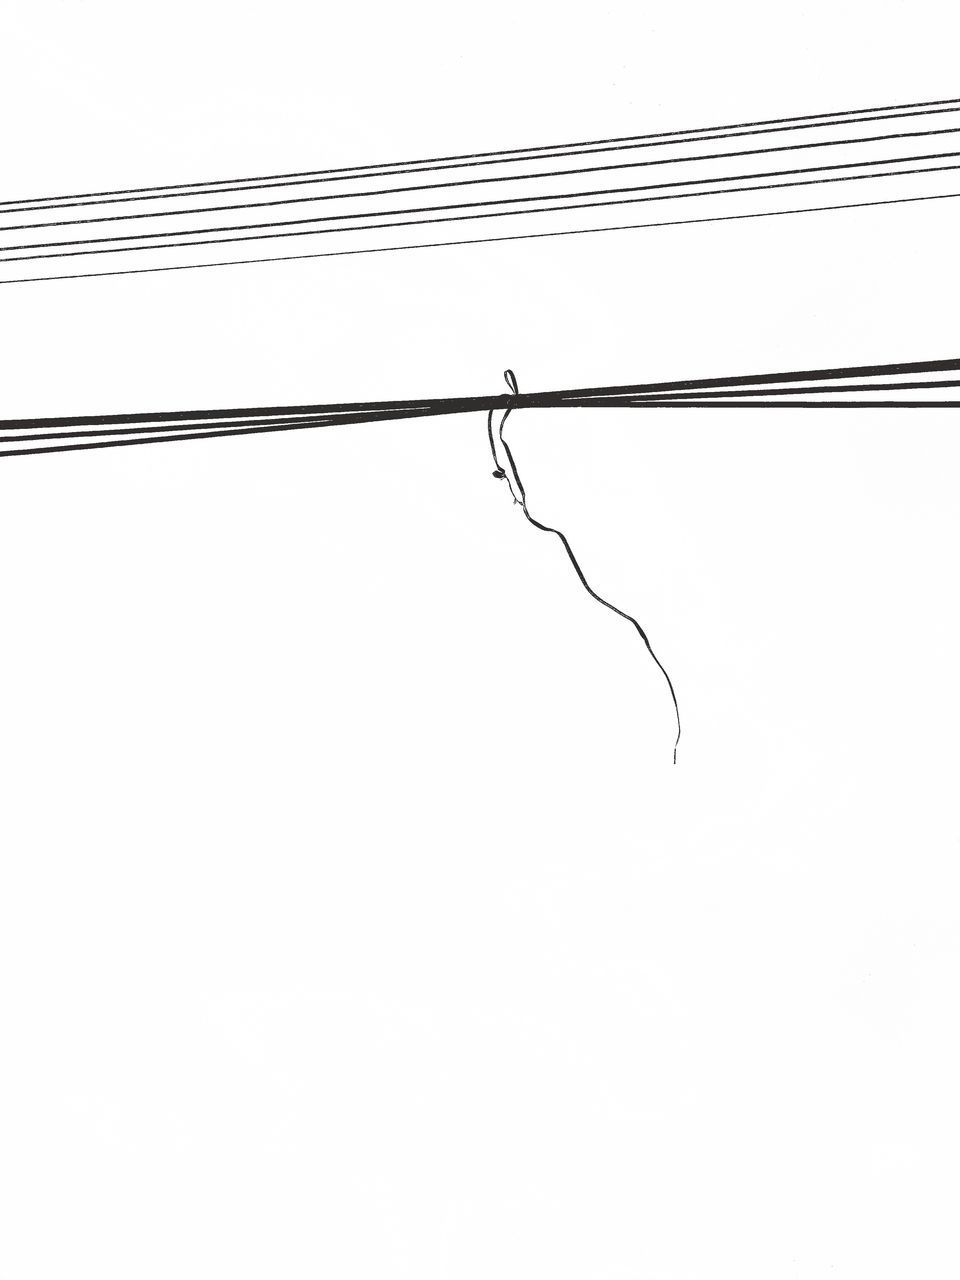 LOW ANGLE VIEW OF POWER LINES AGAINST WHITE BACKGROUND